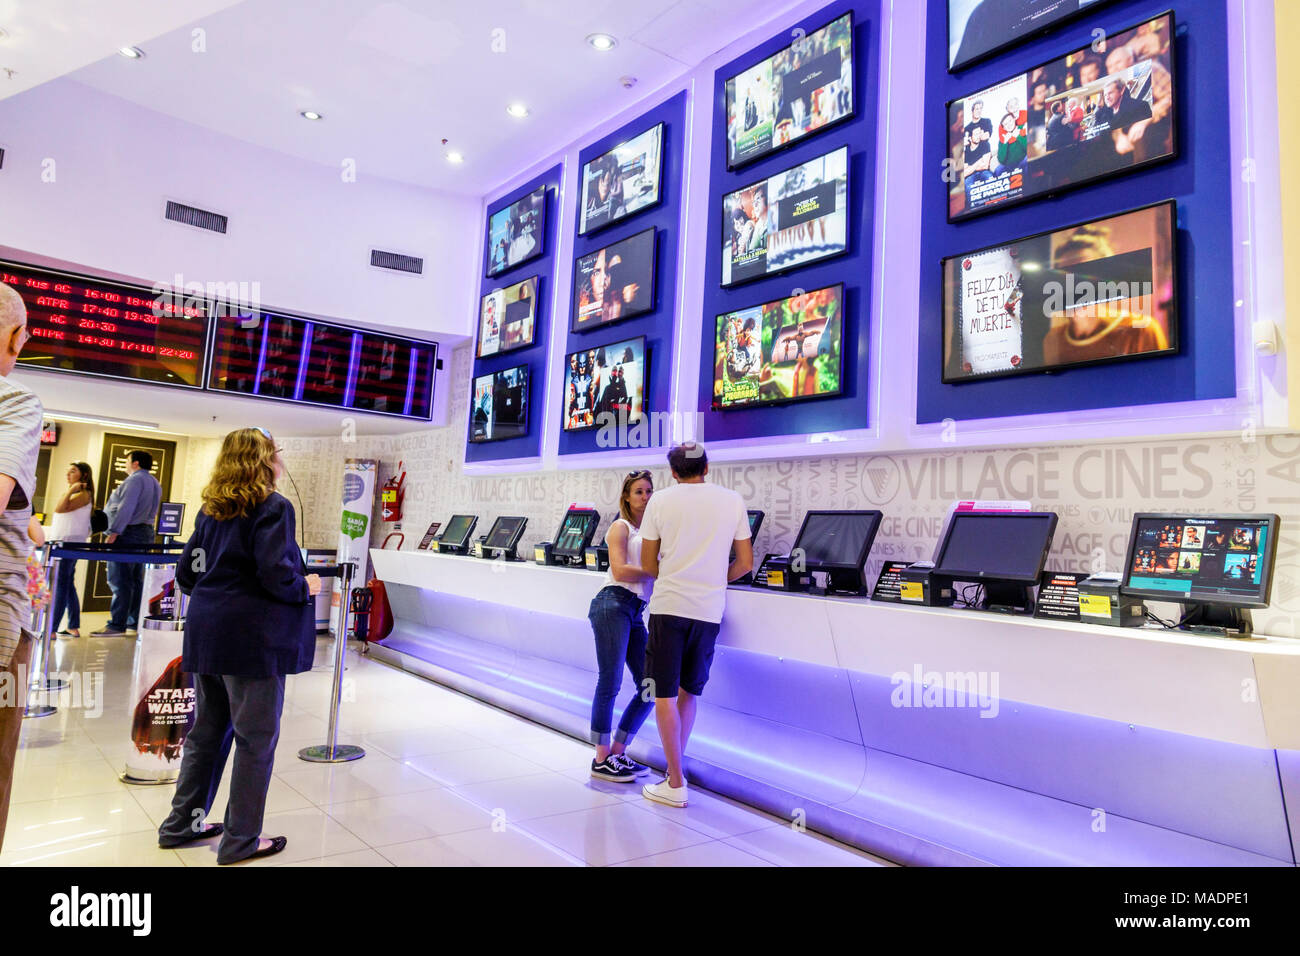 Buenos Aires Argentina Recoleta Mall shopping interior Village Cines multiplex movie theater theatre cinema feature films self-serve ticket machines man woman Hispanic Argentinean Argentinian Argentine South America American - Stock Image